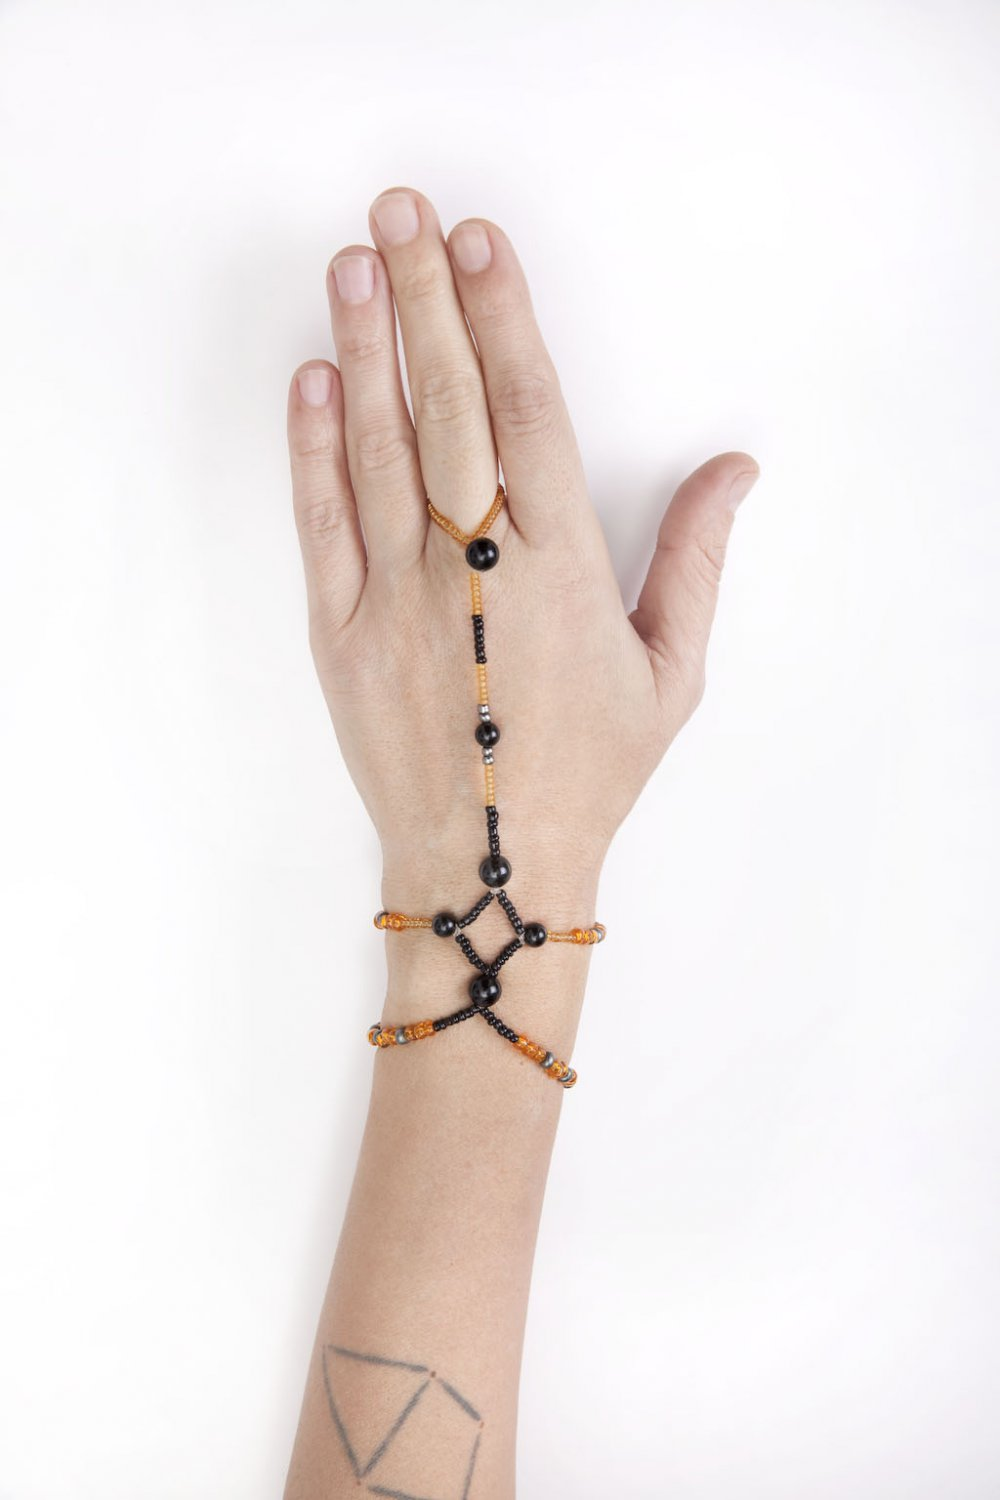 THE TIGRESS | 1st Chakra Opening Activation Bracelet